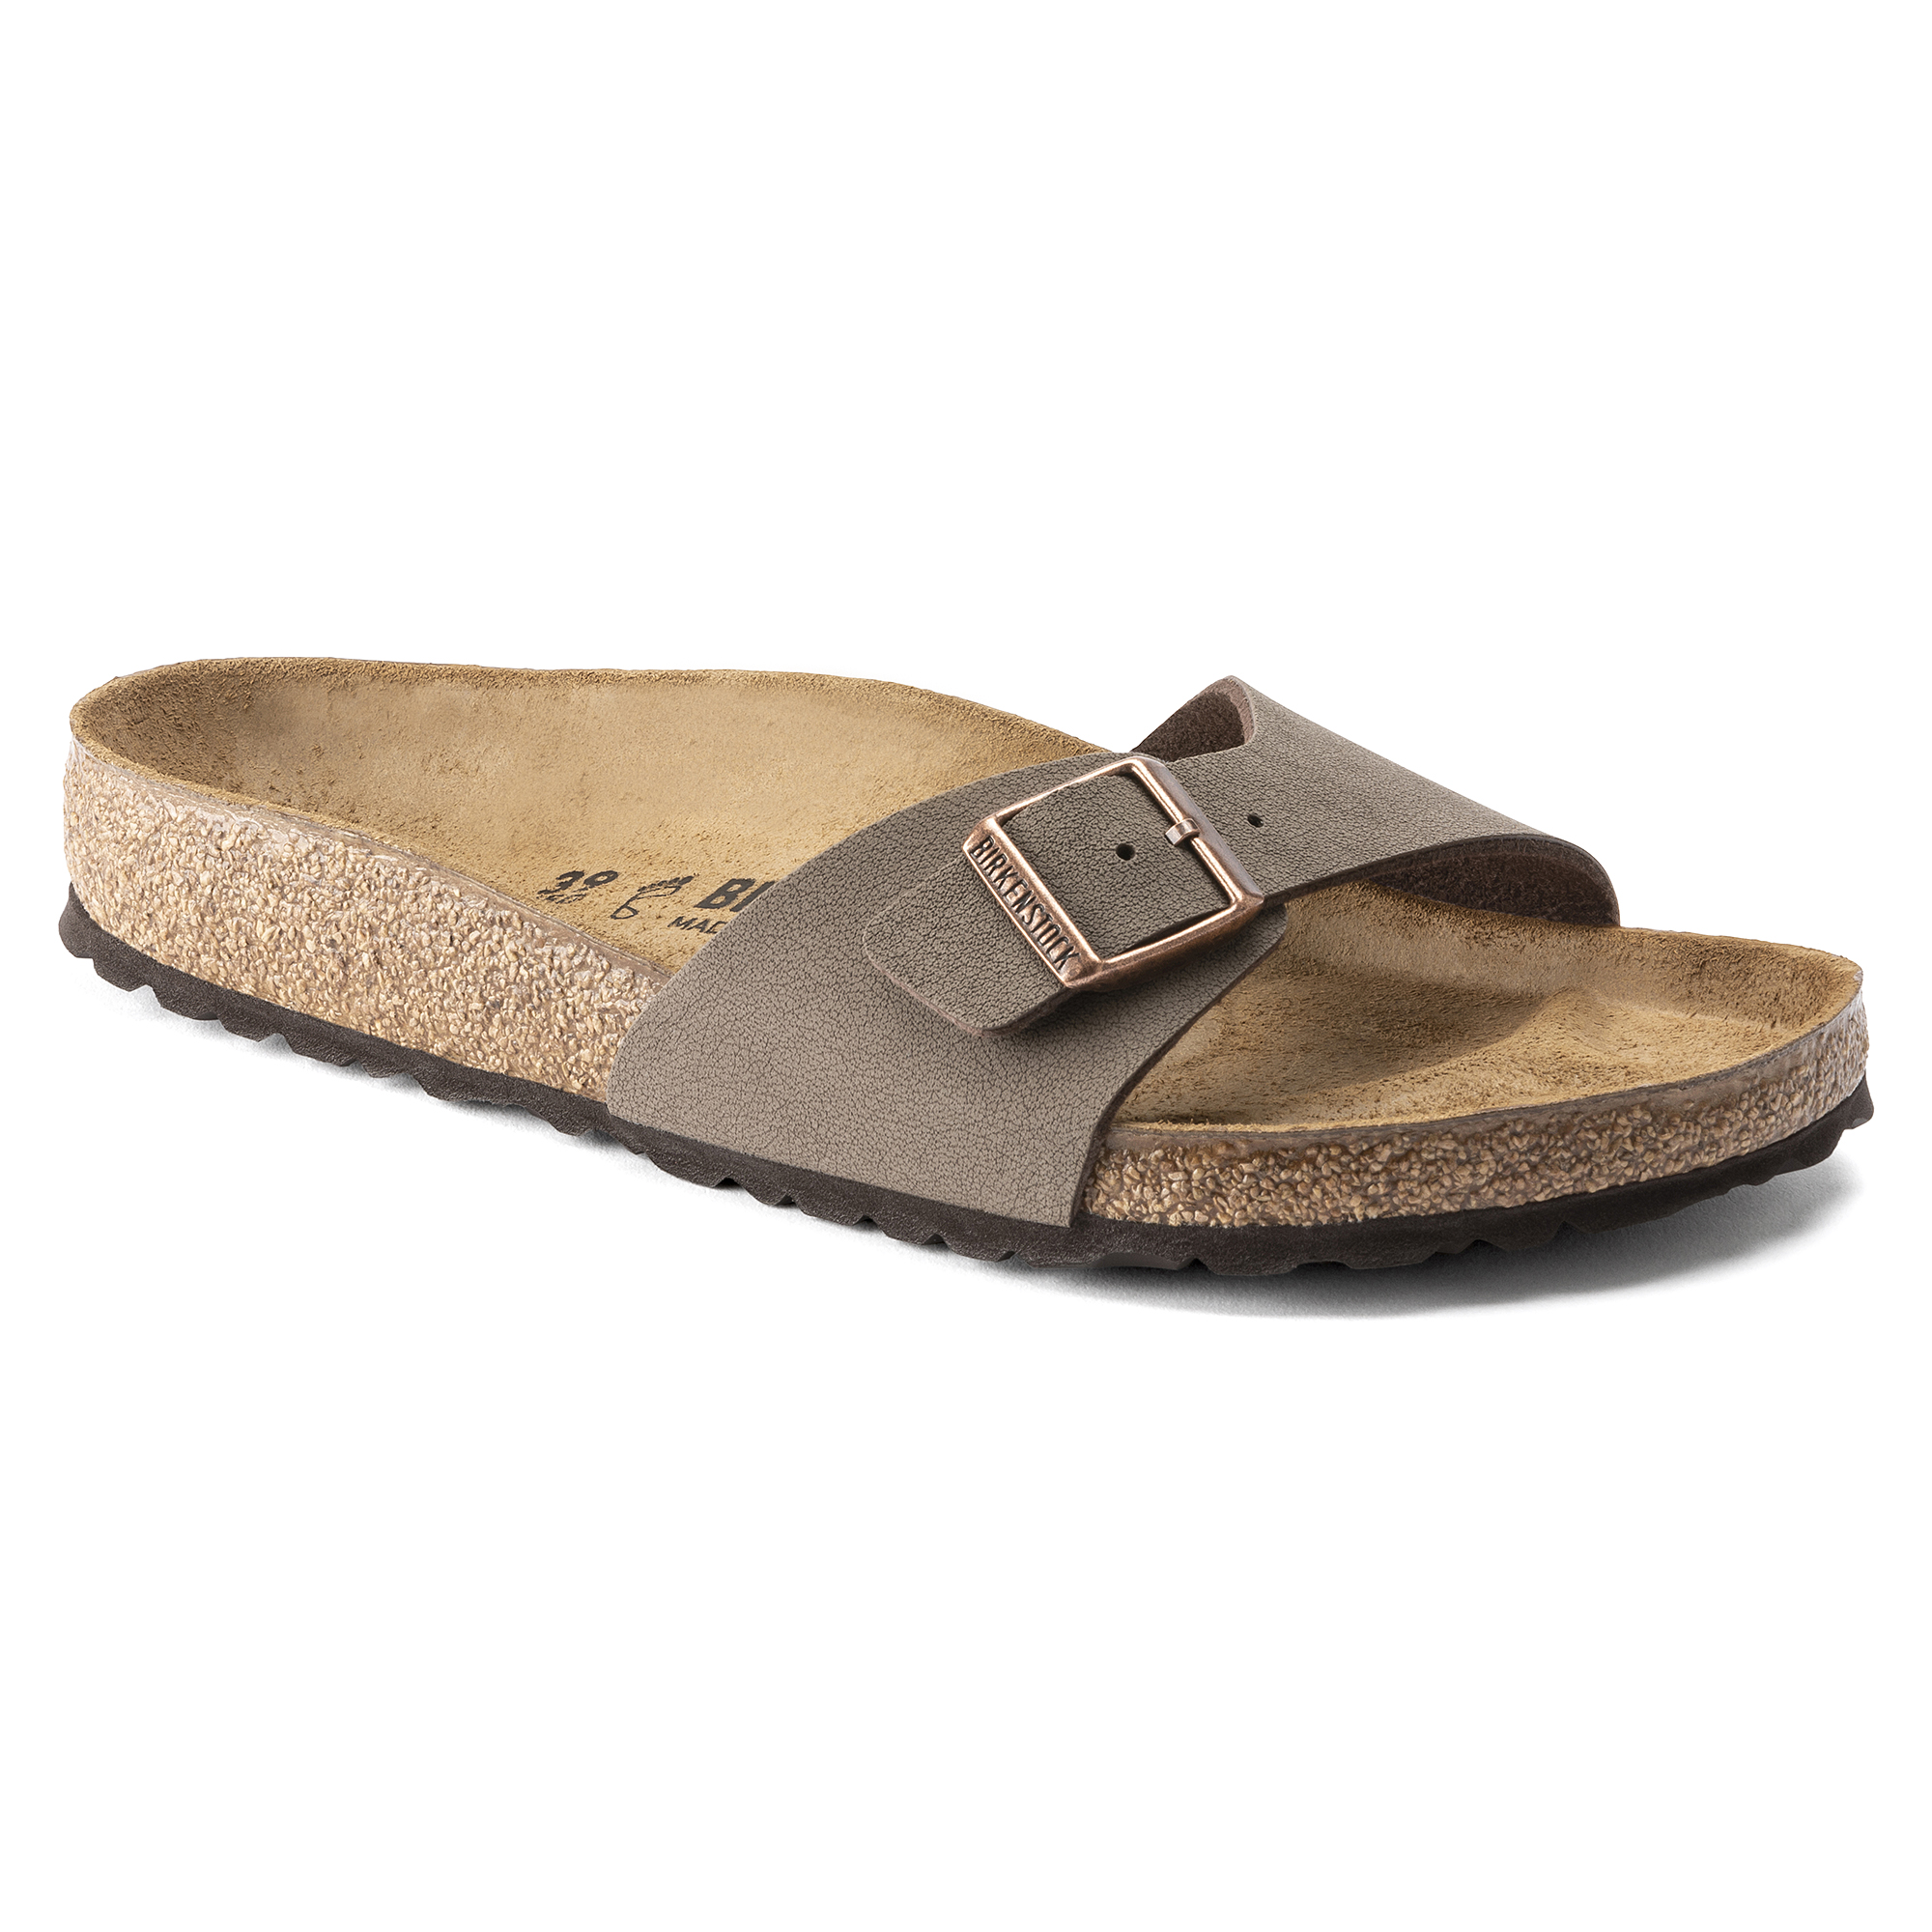 「Madrid Birko-Flor Nubuck Sandals in mocca」的圖片搜尋結果